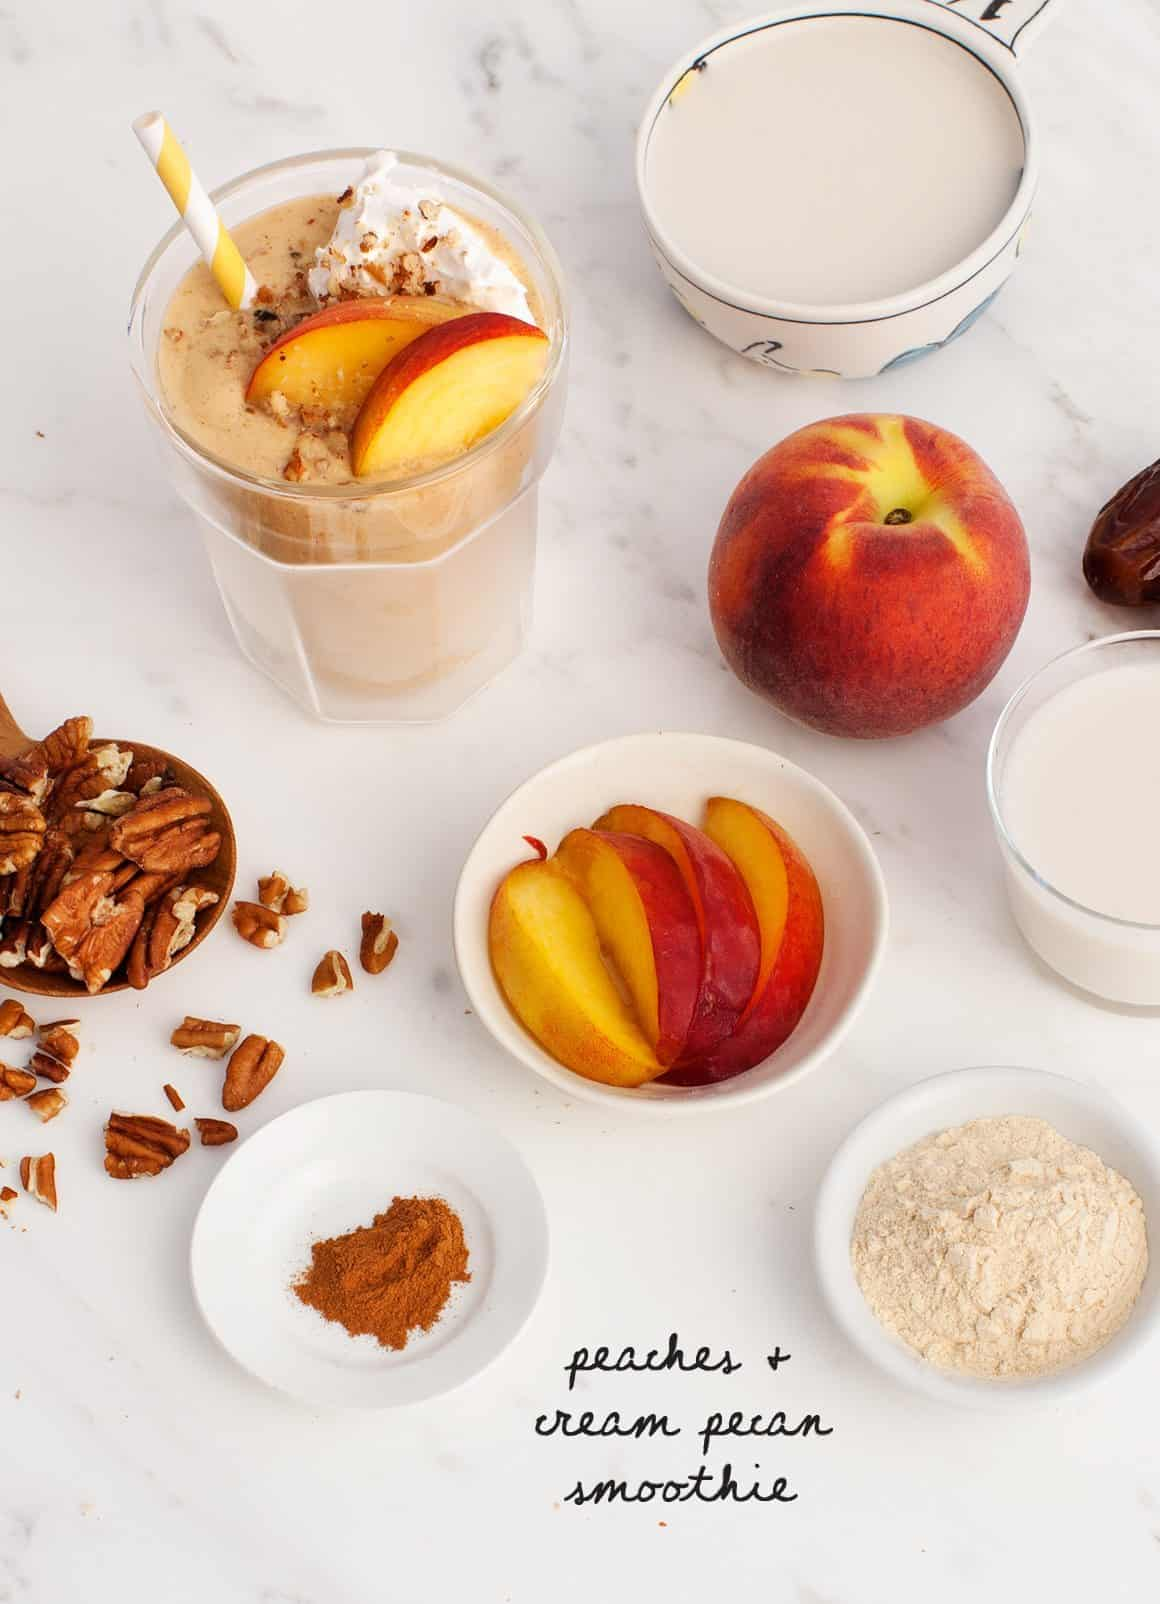 Peaches & Cream Pecan Smoothie